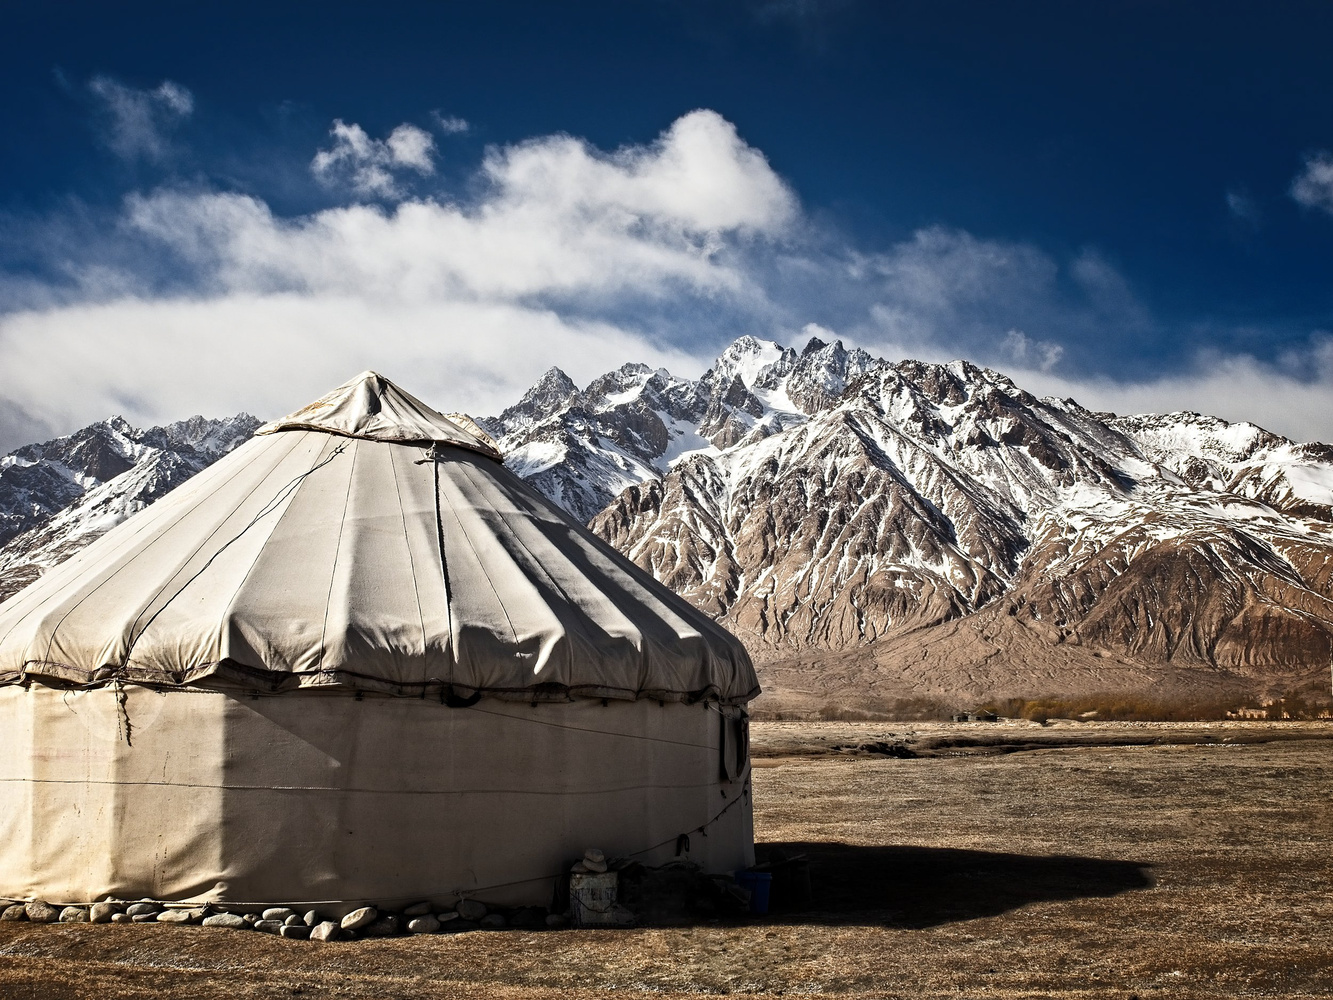 Mountain Yurt by Ira Jacob